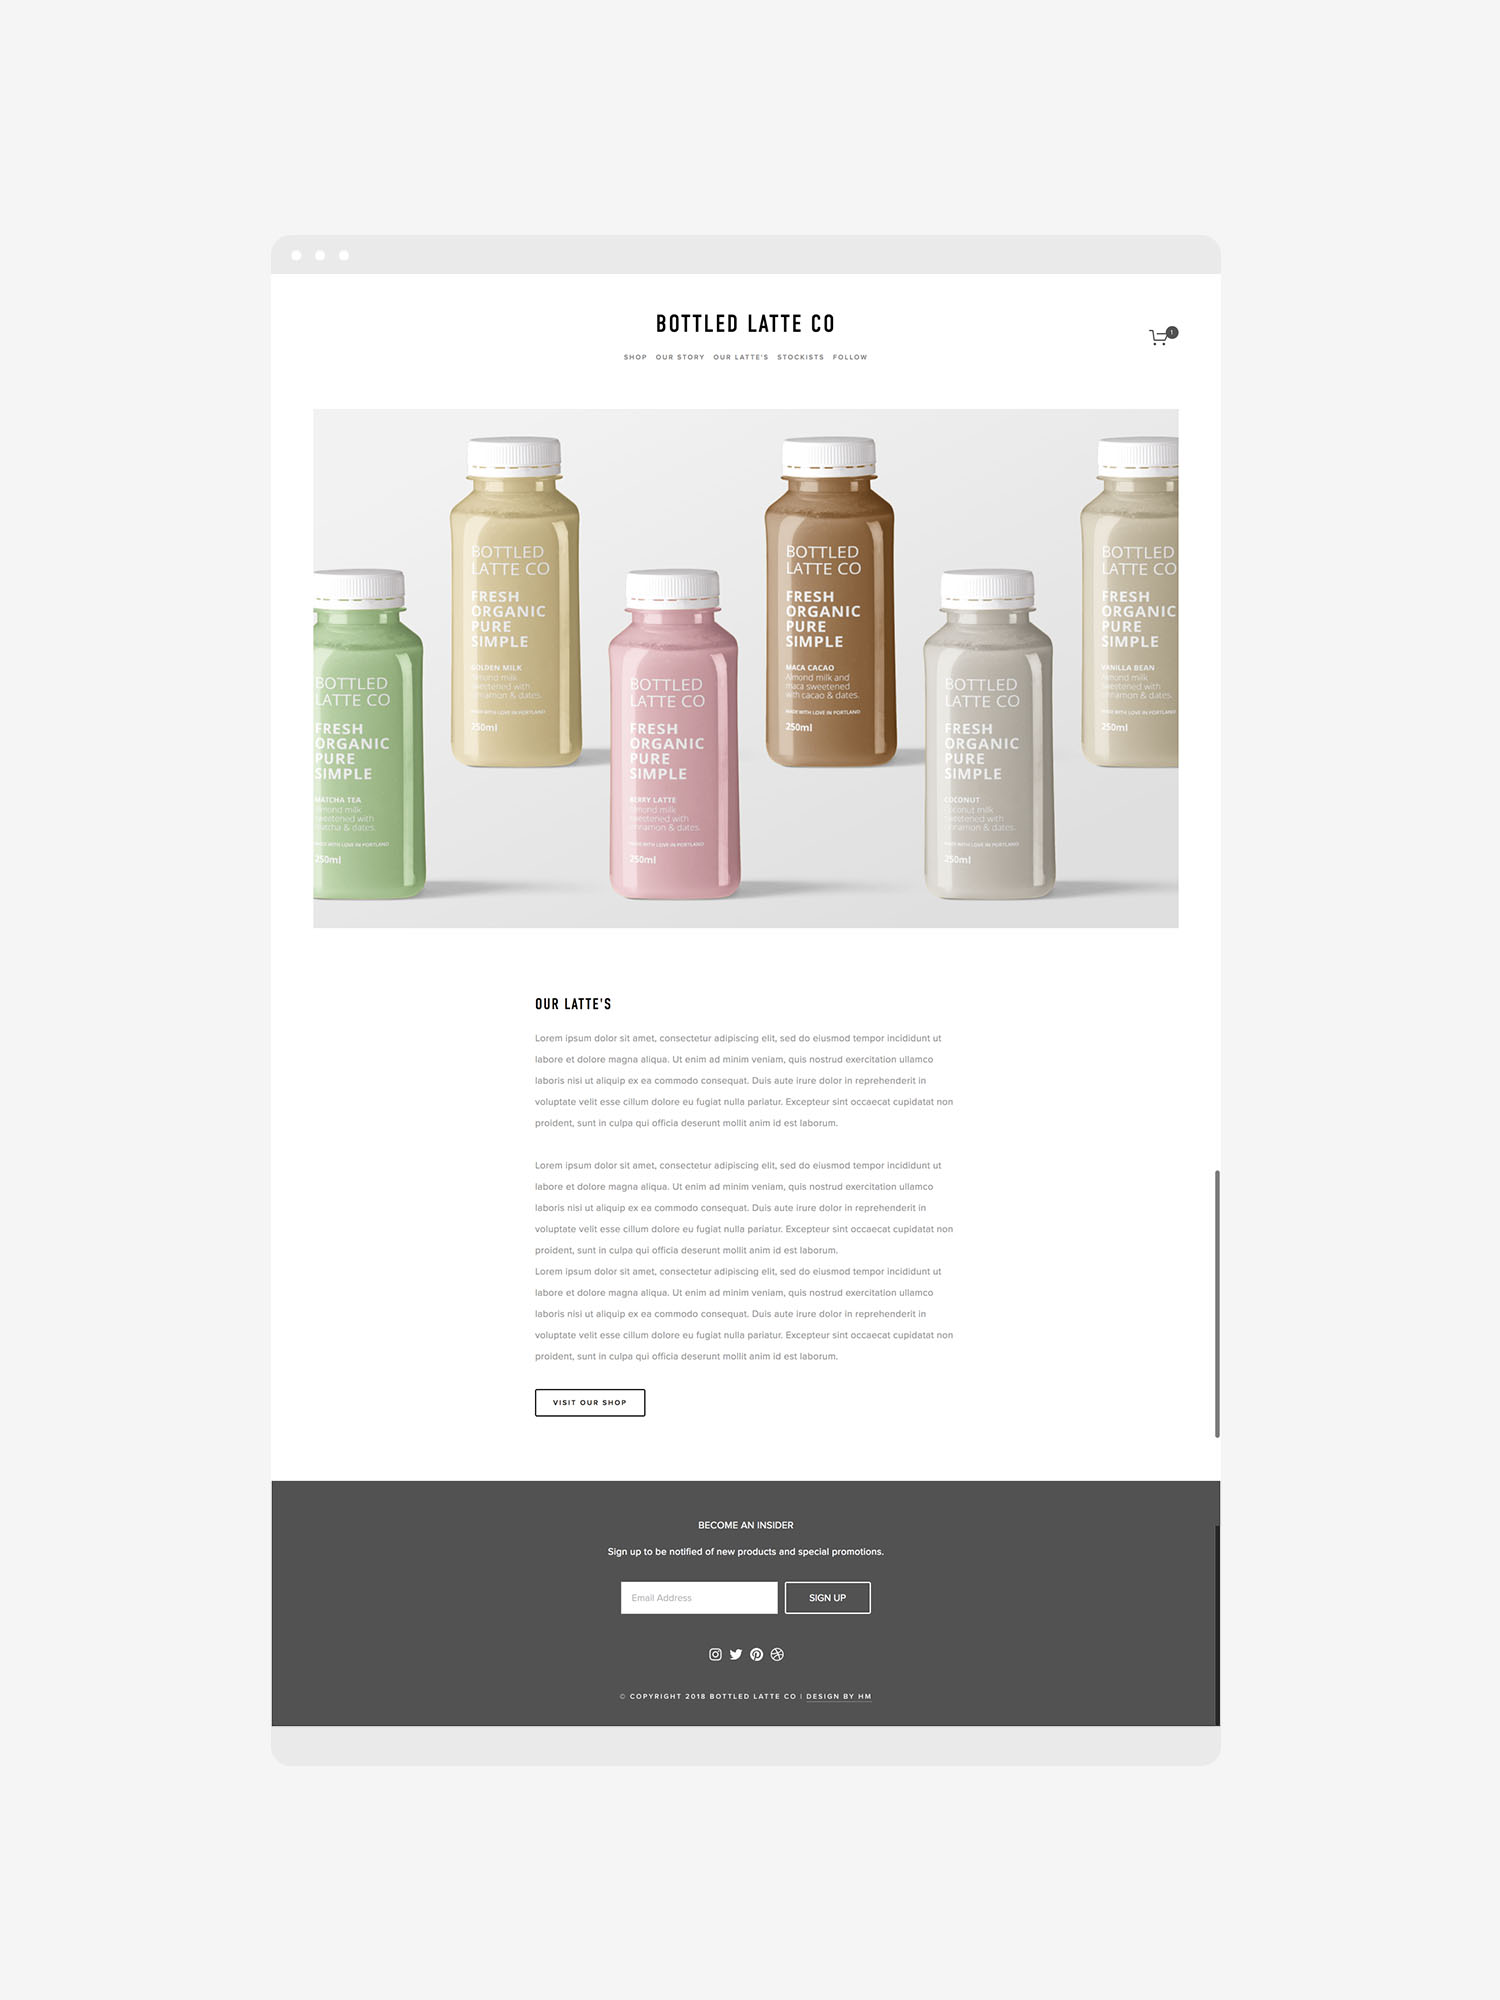 Bottled-Latte-Co-Superfood-Lattes-Portland-Website-Design-Squarespace-Heather-Maehr